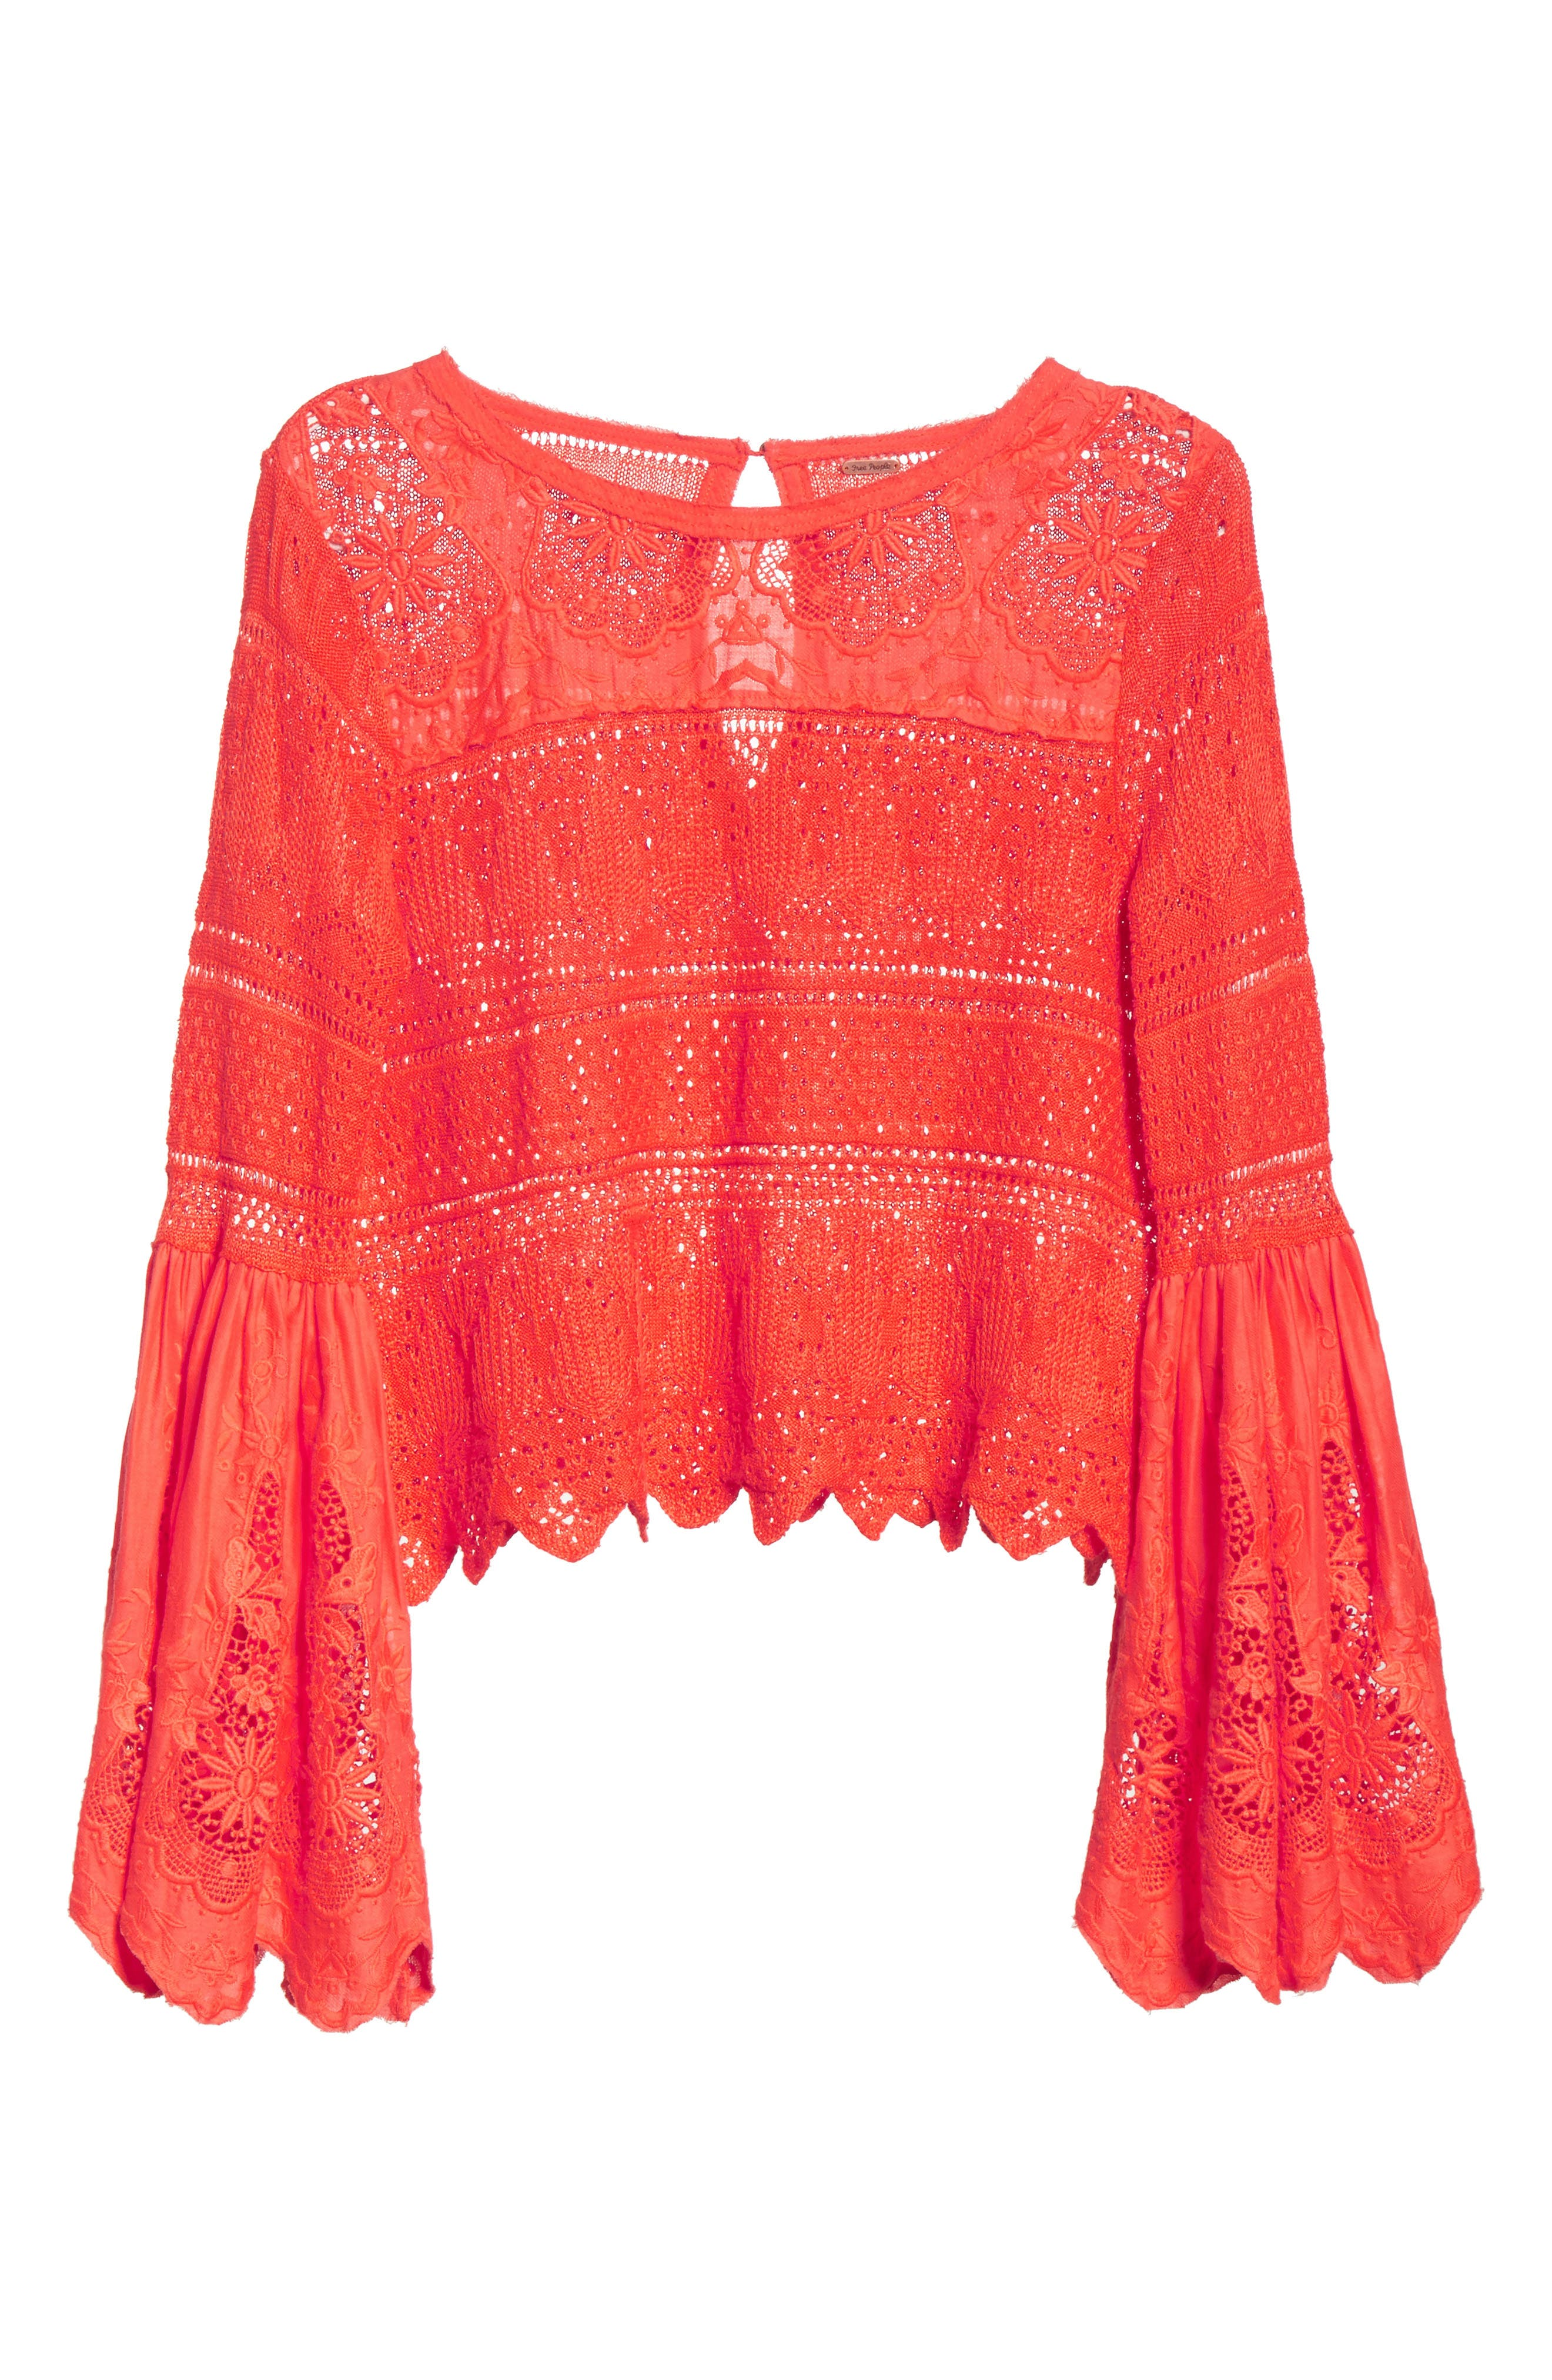 Once Upon a Time Lace Top,                             Alternate thumbnail 5, color,                             Red